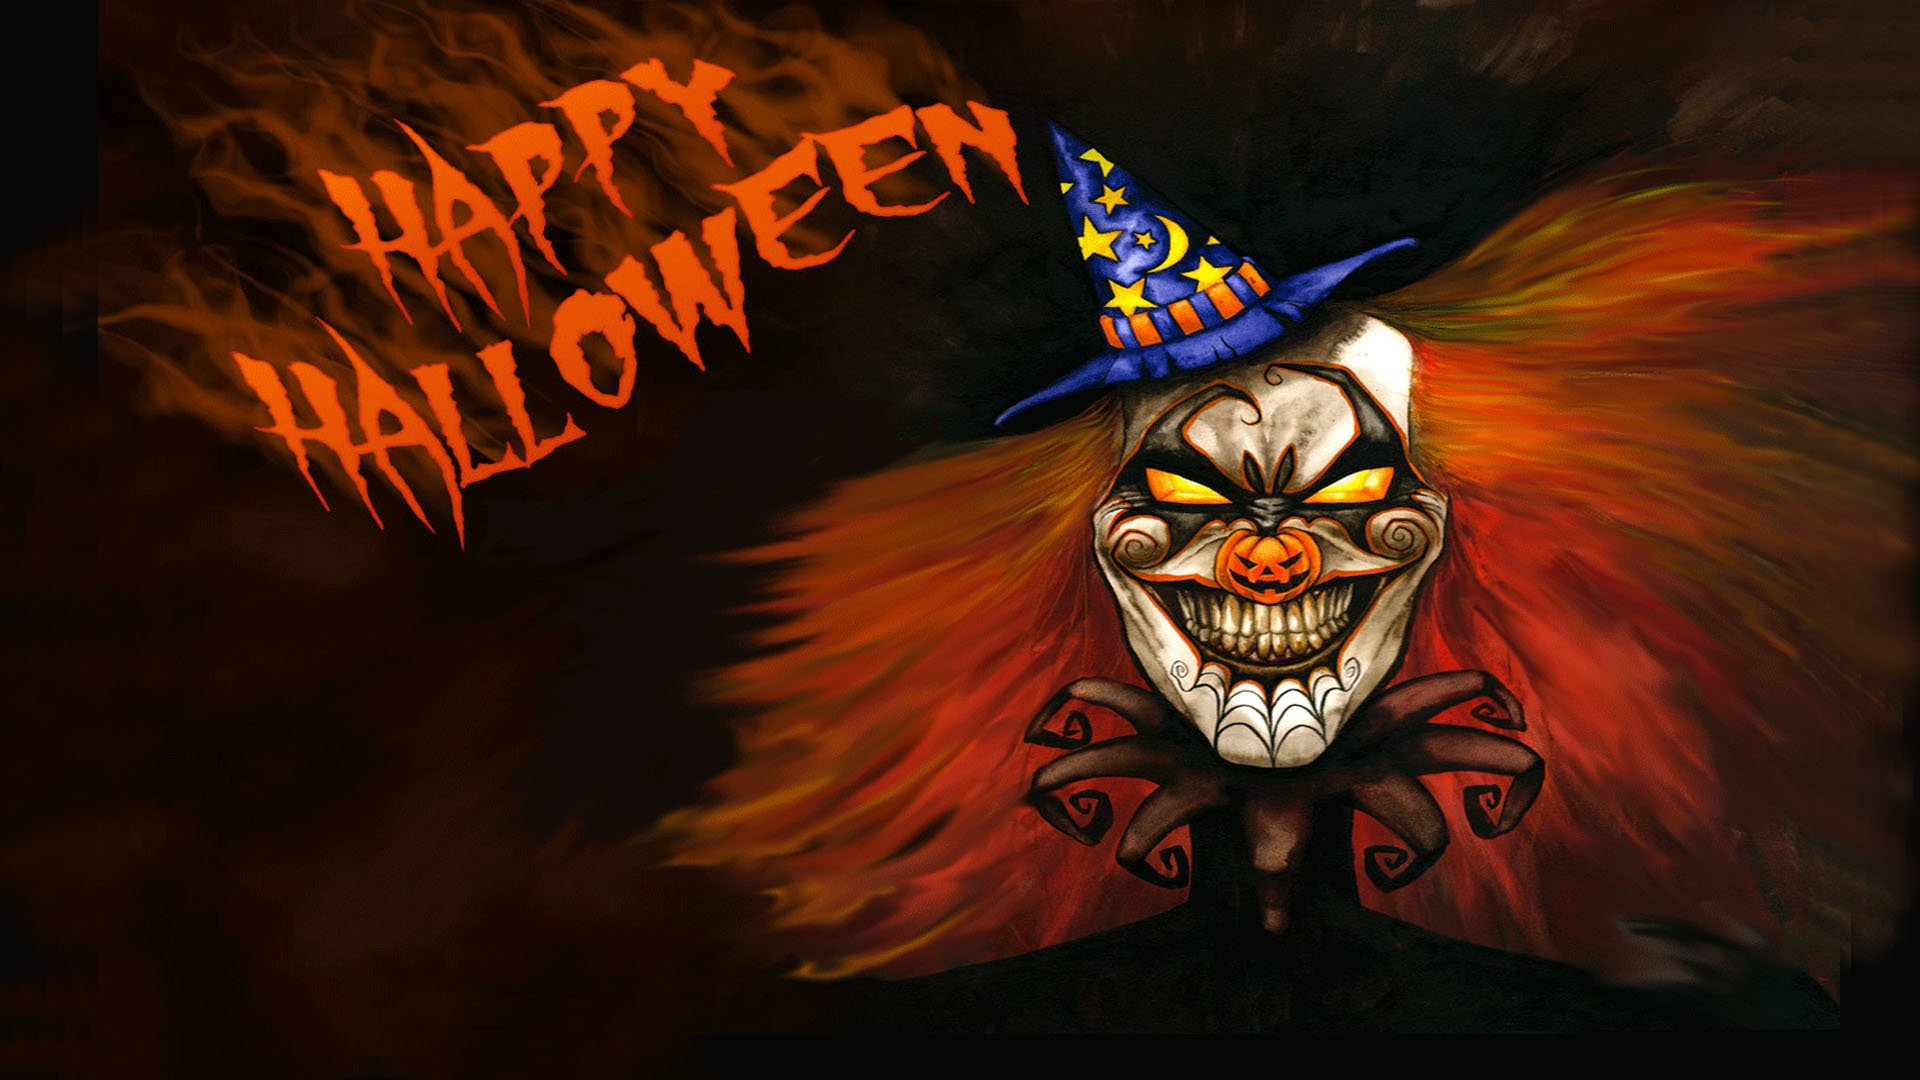 748 Halloween HD Wallpapers Background Images 1920x1080